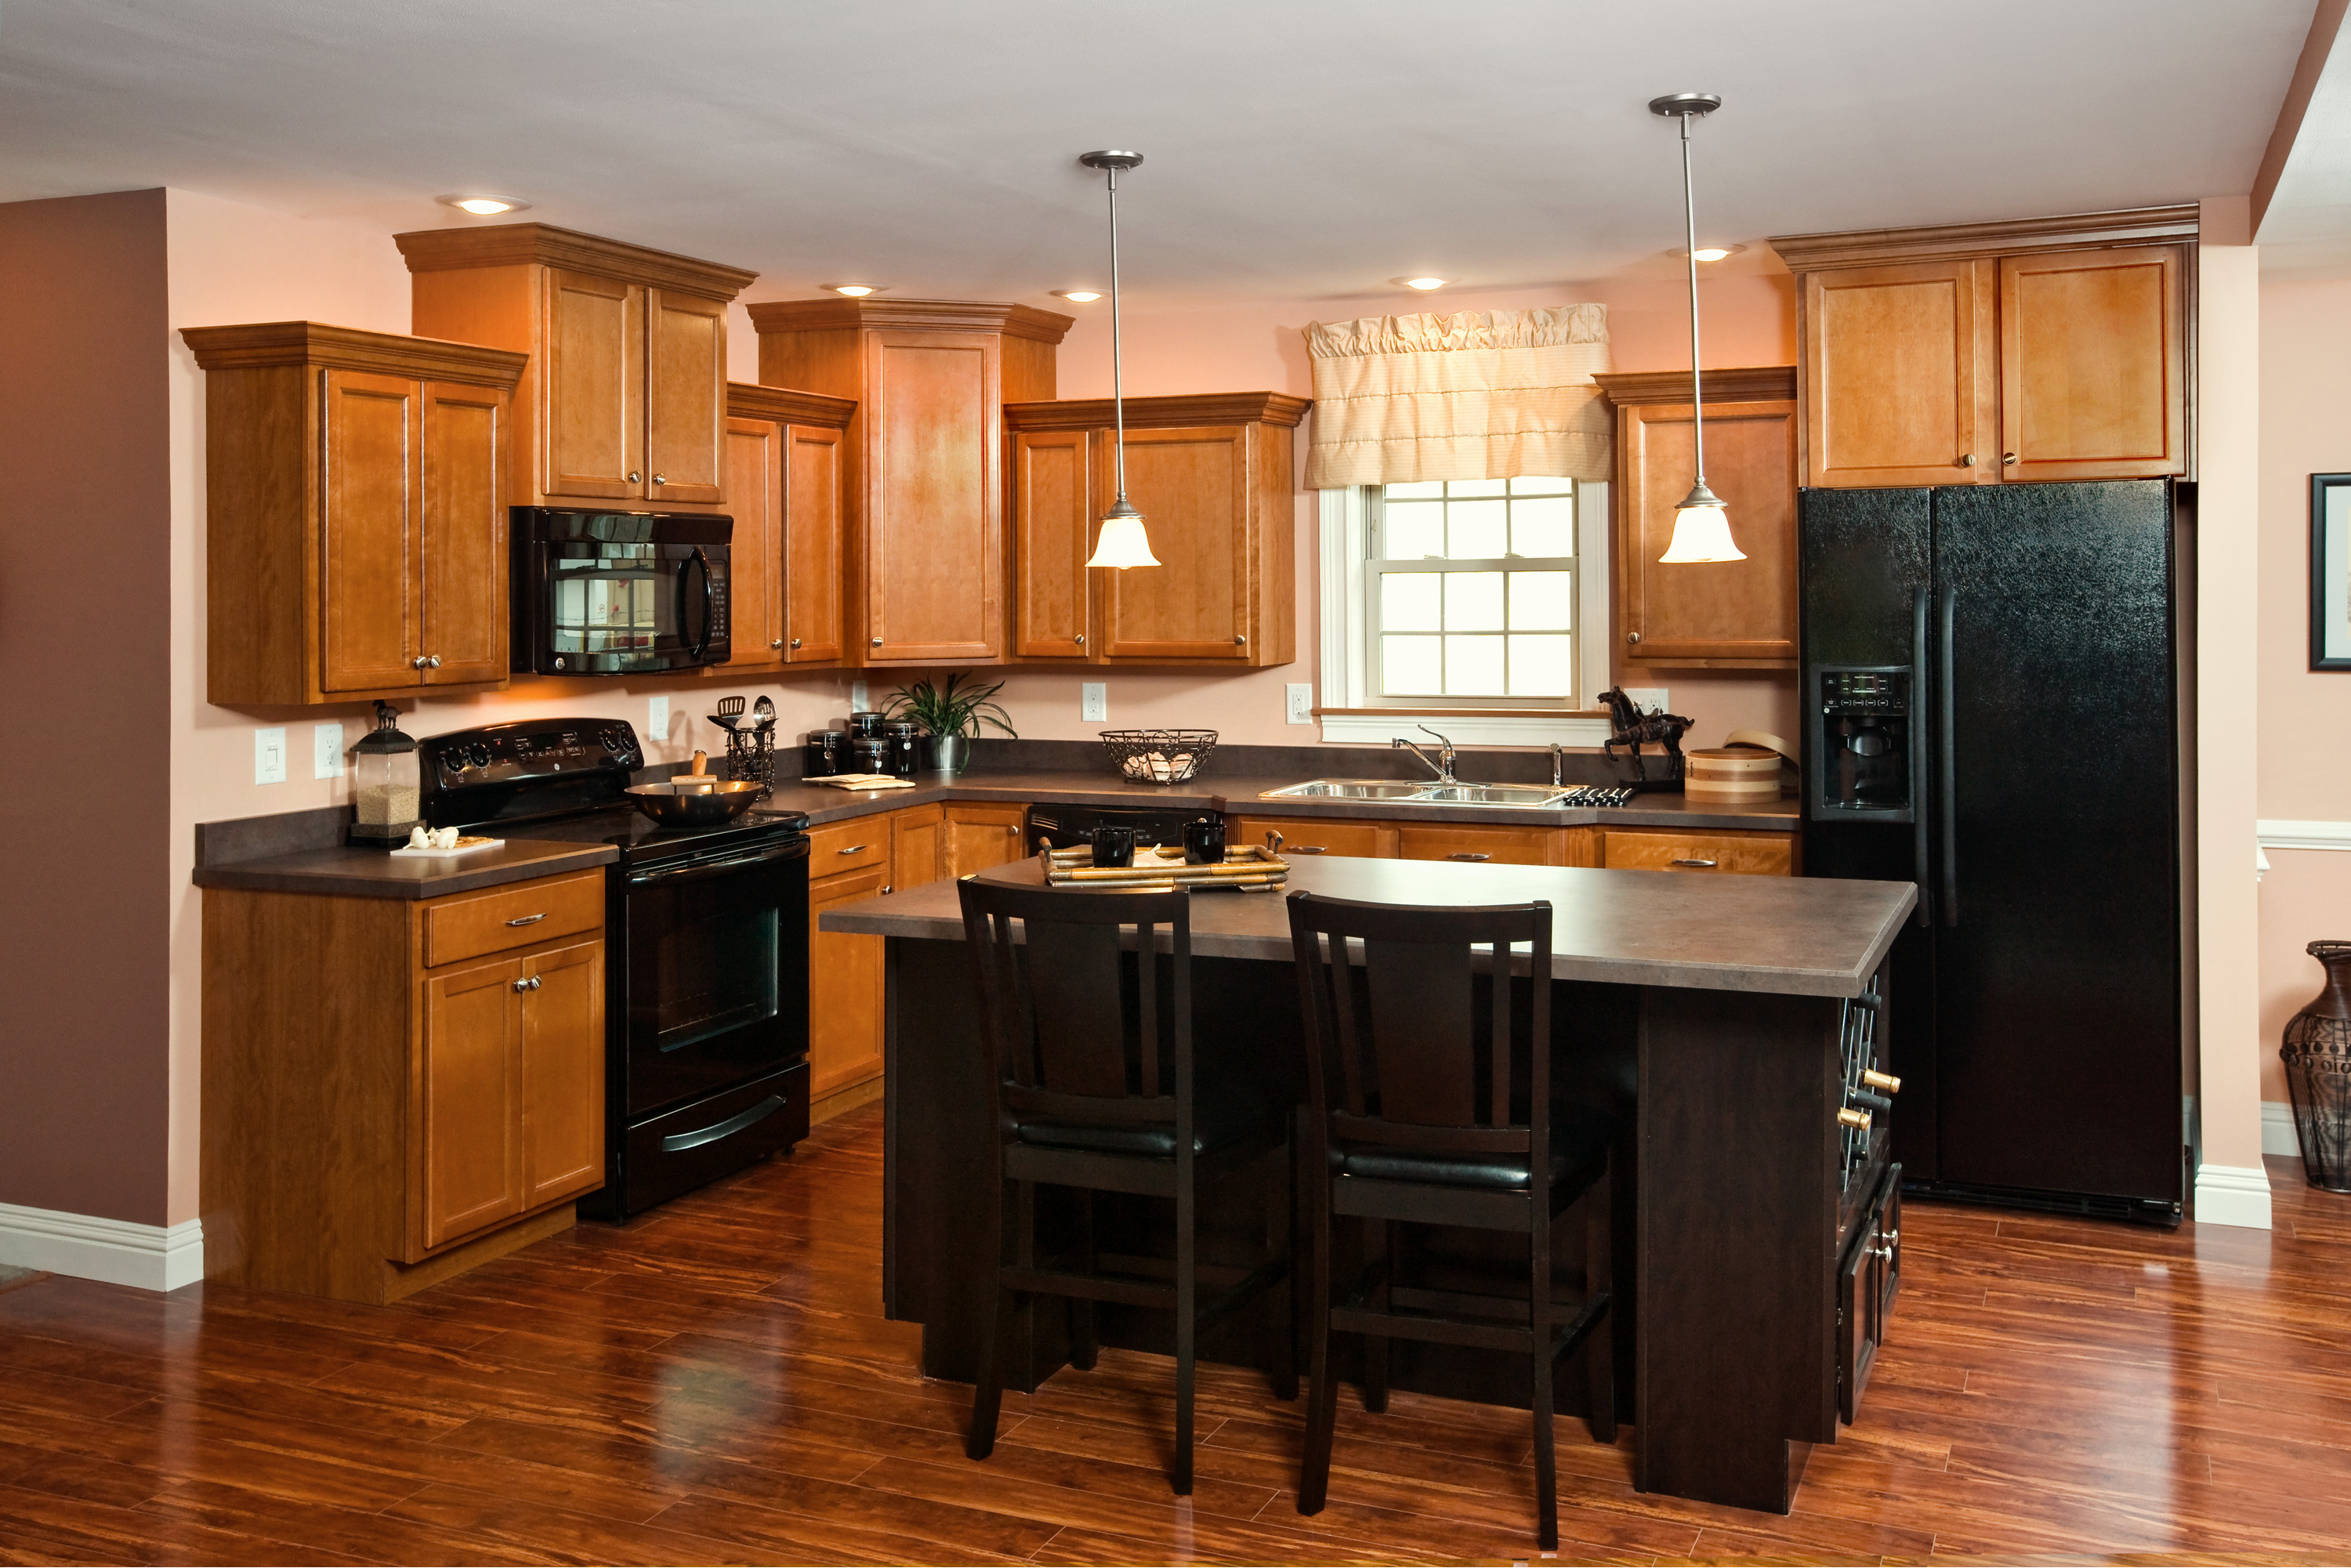 Download wallpapers to go store locations gallery for Kitchen cabinets lowes with halos state stickers